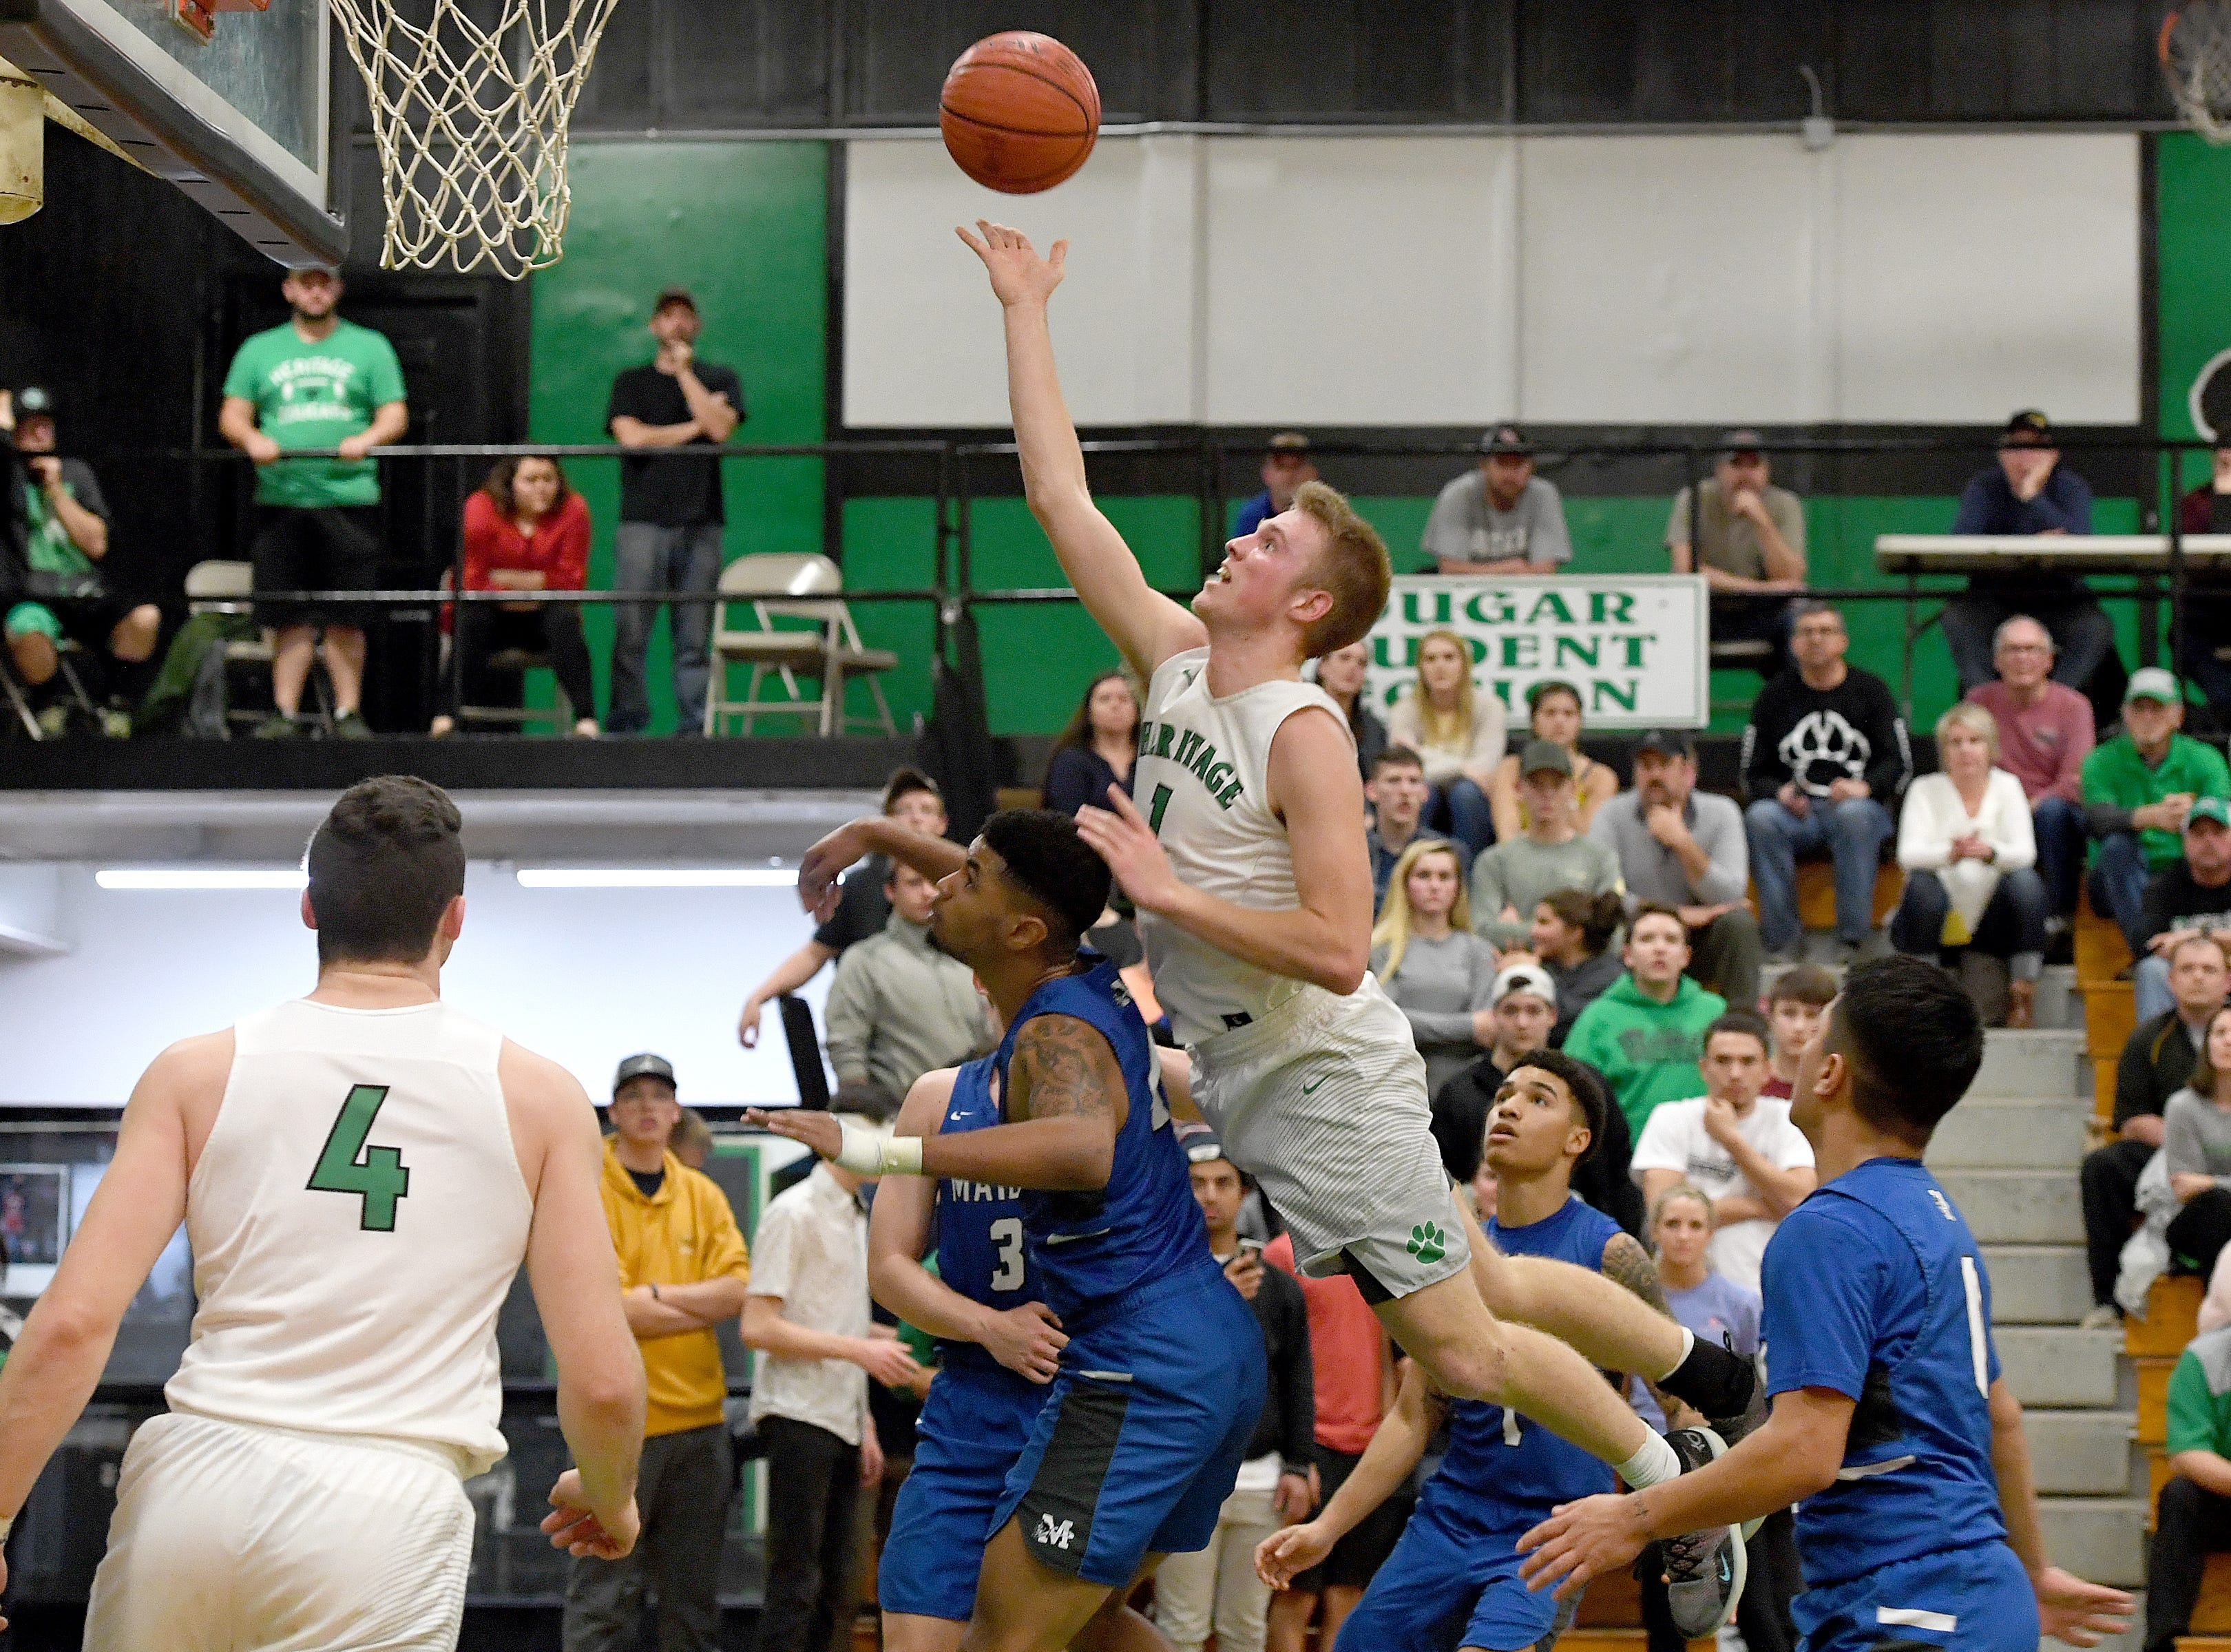 Mountain Heritage's Lucas Jenkins leaps for a shot against Maiden during their playoff game at Mountain Heritage High School on Feb. 28, 2019. The Cougars won 74-69 in overtime to advance to the next round.